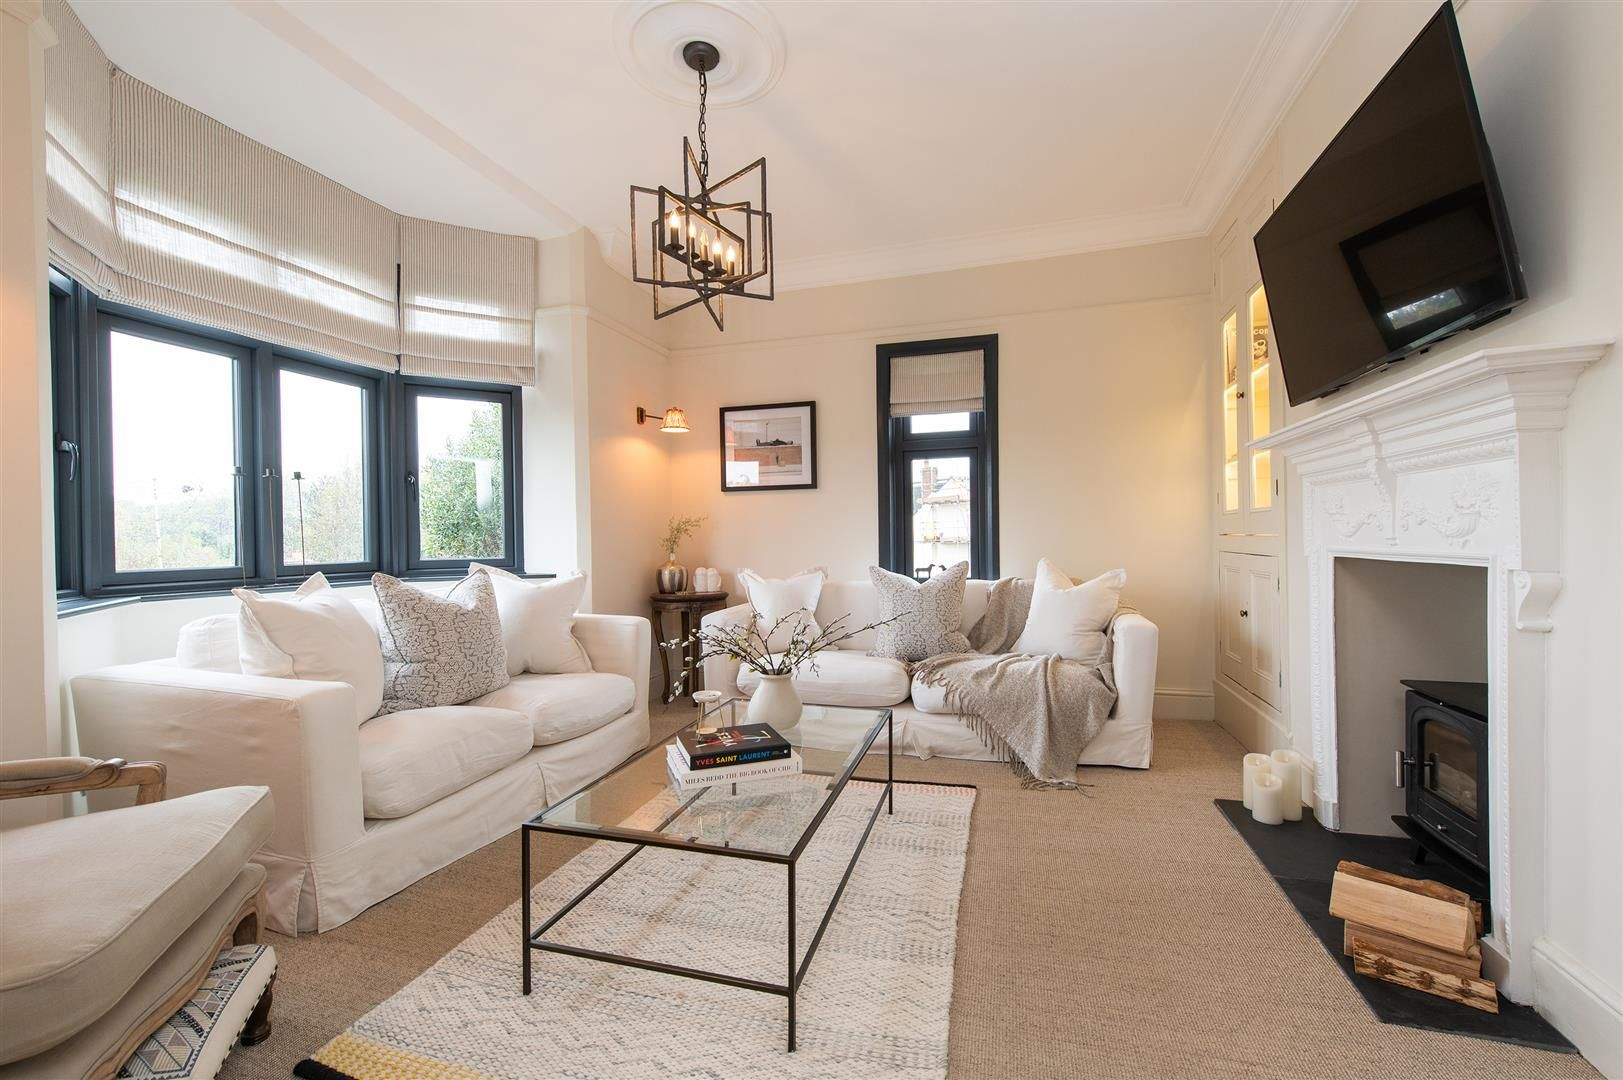 4 bed house for sale in Kinver 6